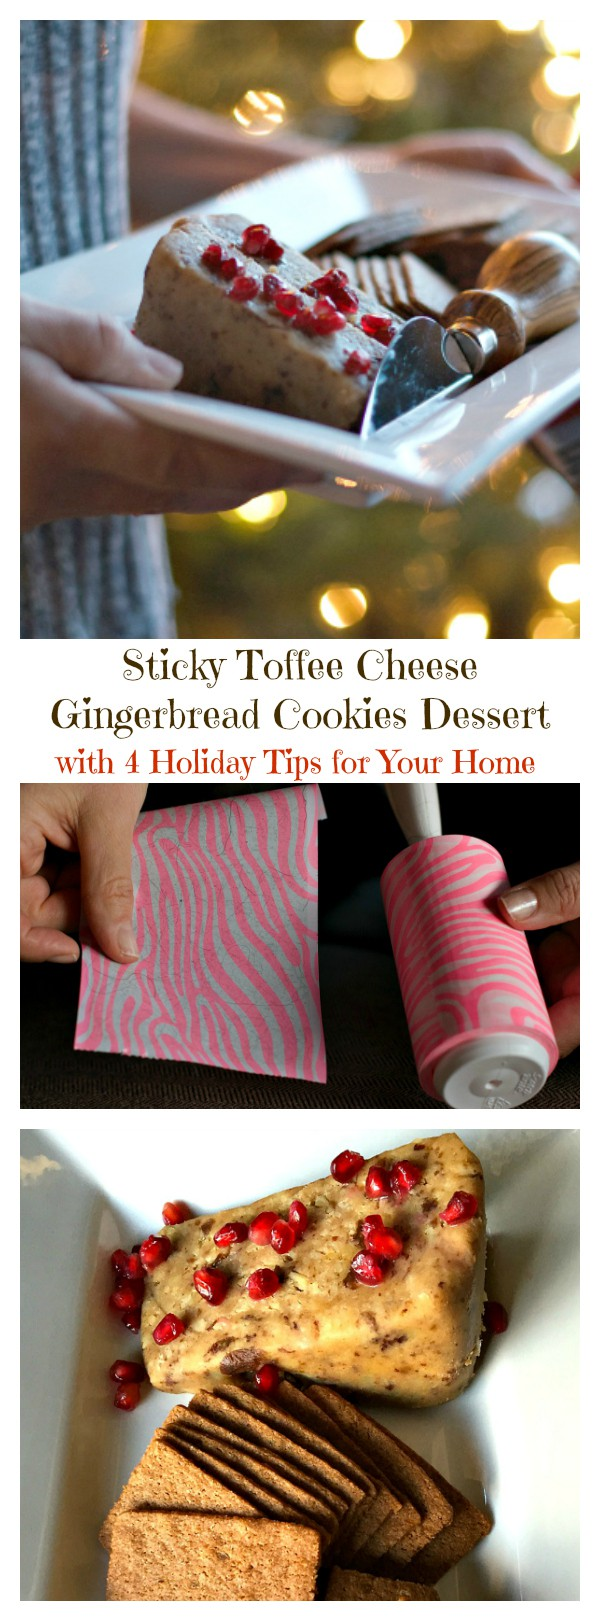 Sticky Toffee Cheese Gingerbread Cookies Dessert with 4 Holiday Tips for Your Home